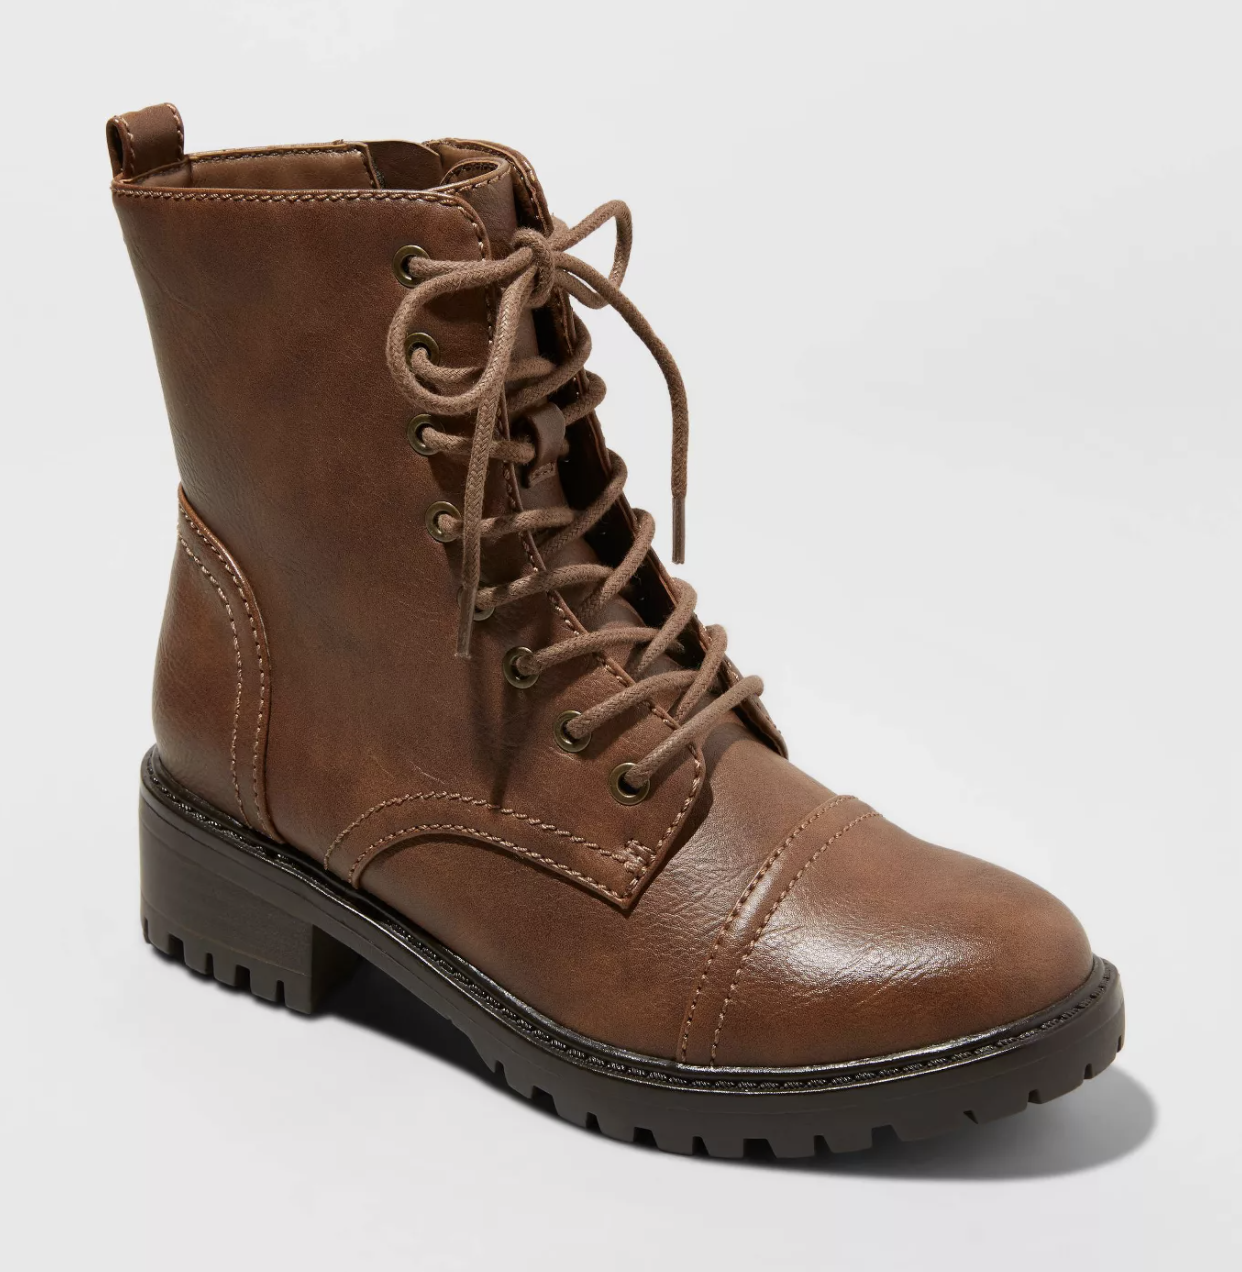 the brown lace-up combat boots